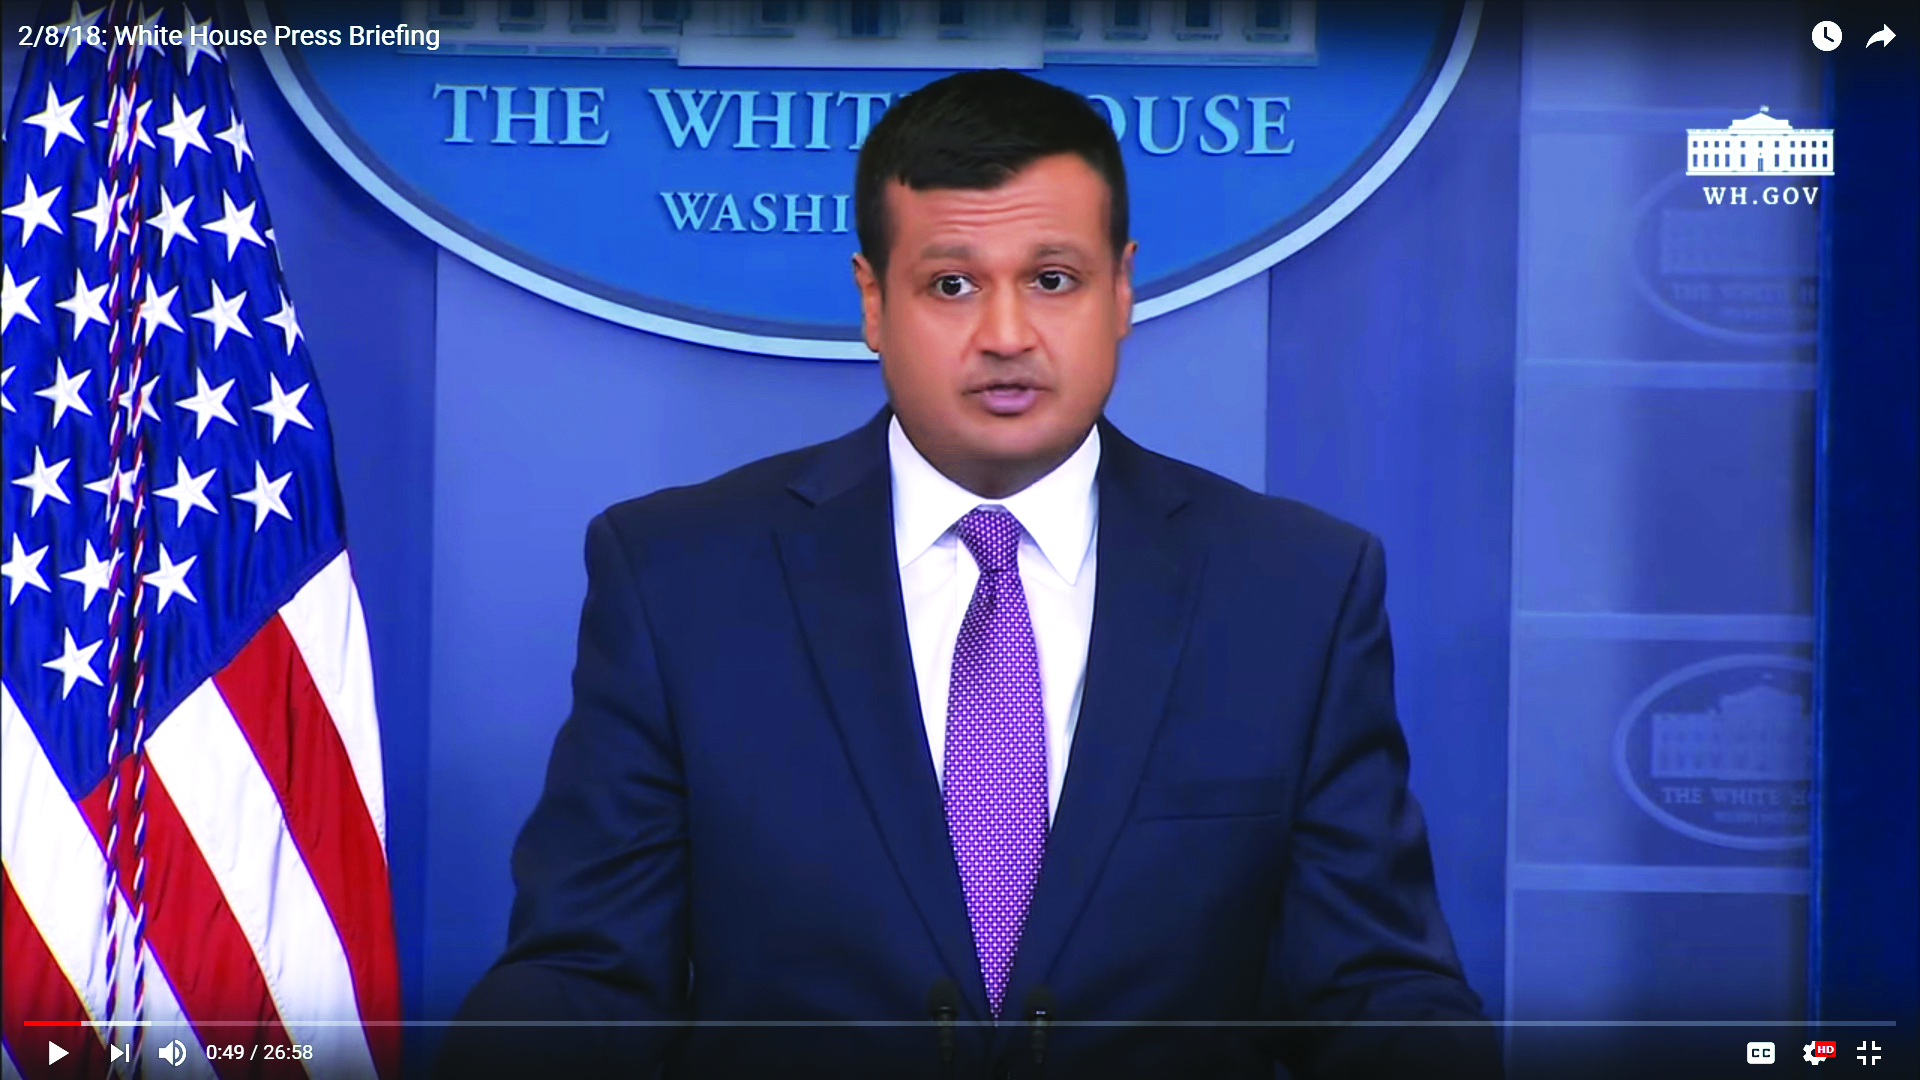 a48c7b4df7 ... White House deputy principal press secretary, now appointed by Trump to  liaison with Congress on selecting a new Supreme Court Justice (Photo:  YouTube)